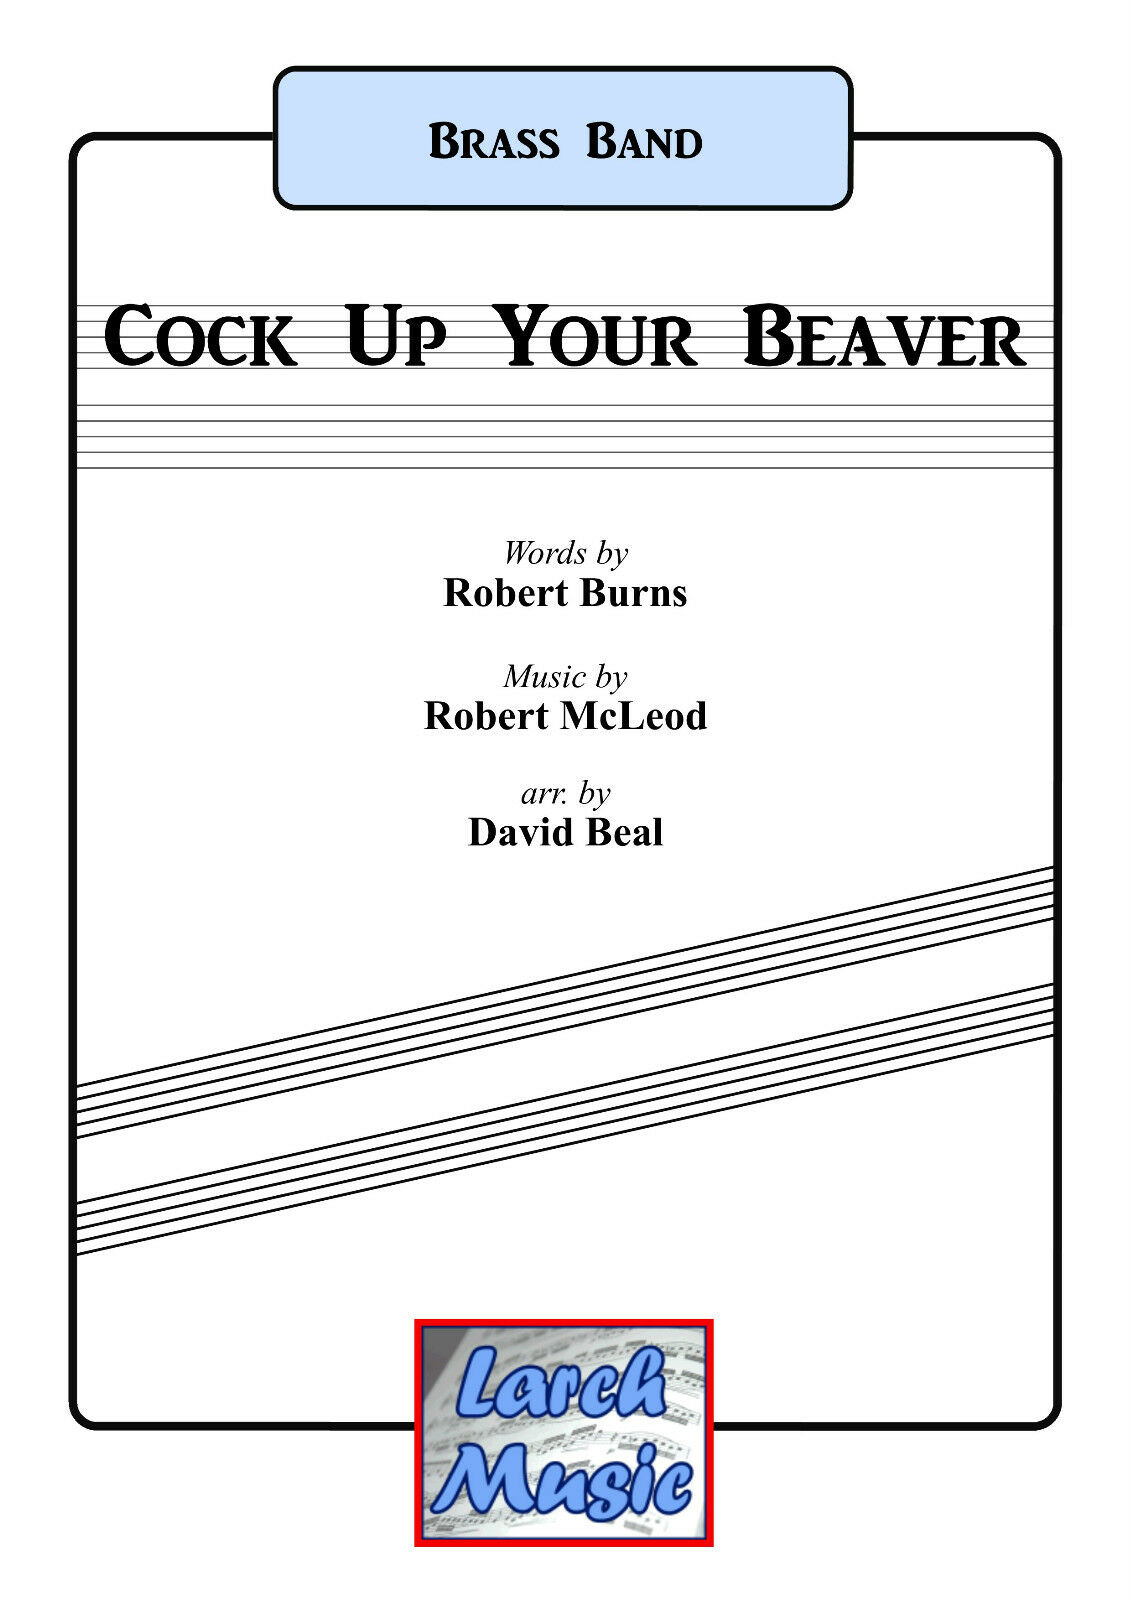 Cock up your beaver tab opinion